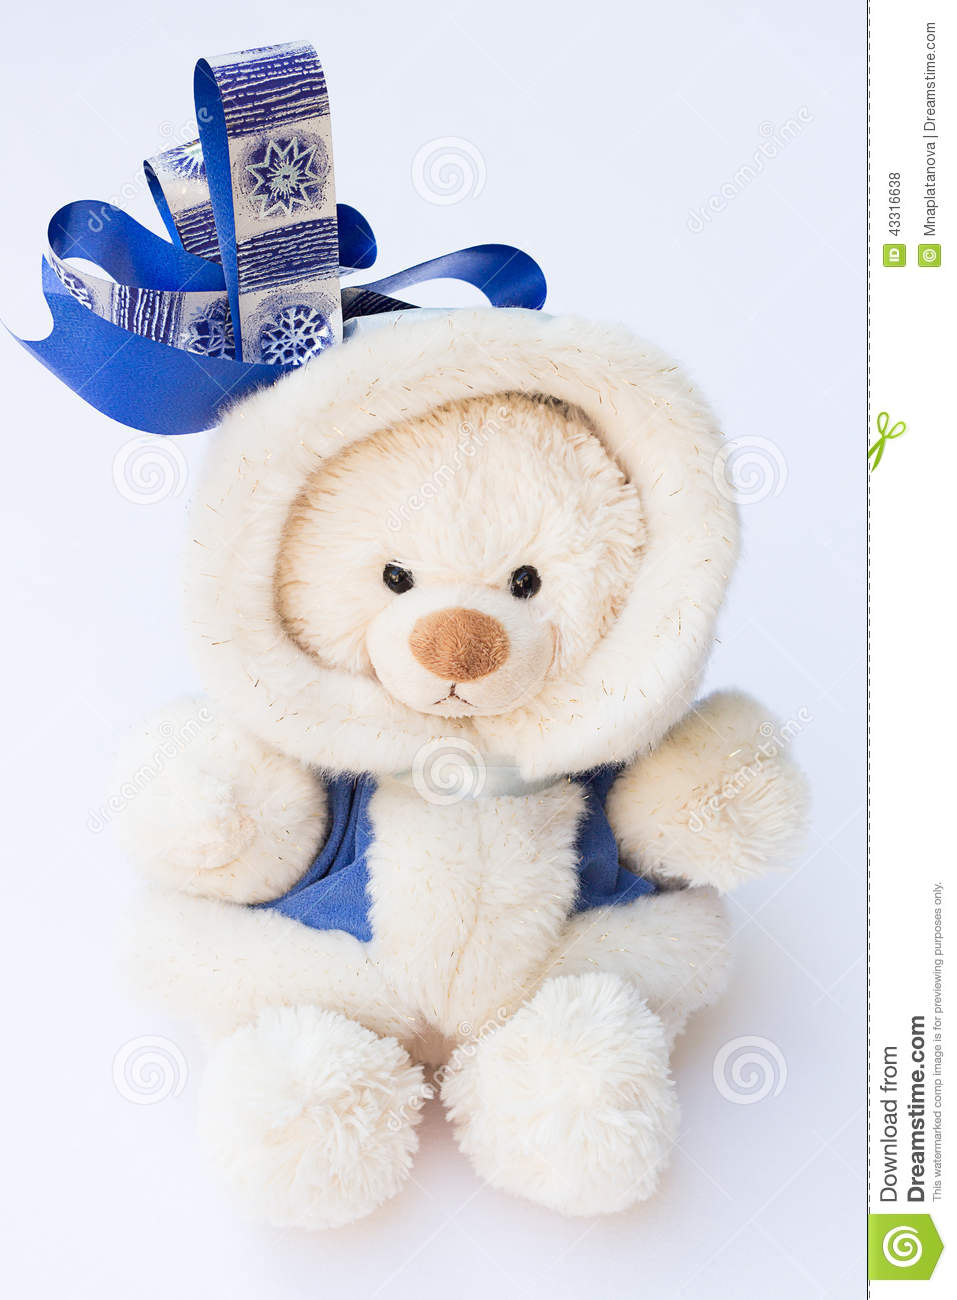 white teddy bear in a winter coat with a big blue ribbon. Black Bedroom Furniture Sets. Home Design Ideas